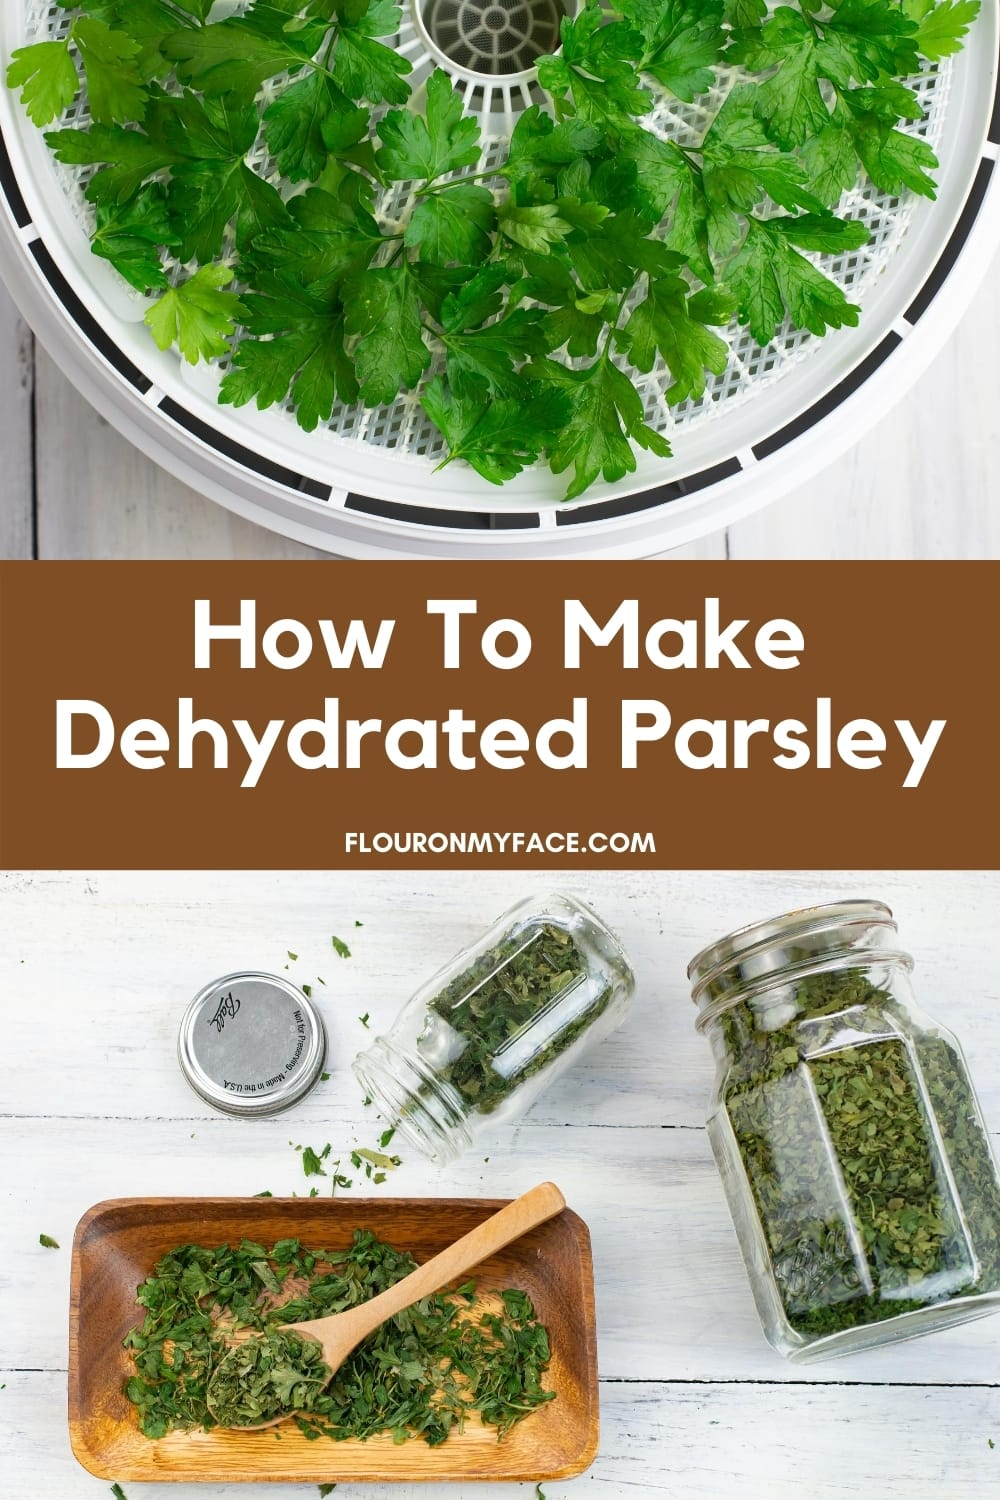 Image showing fresh parsley on a dehydrator tray with an image below showing how the dried herb can be stored in jars for use and long term storage.